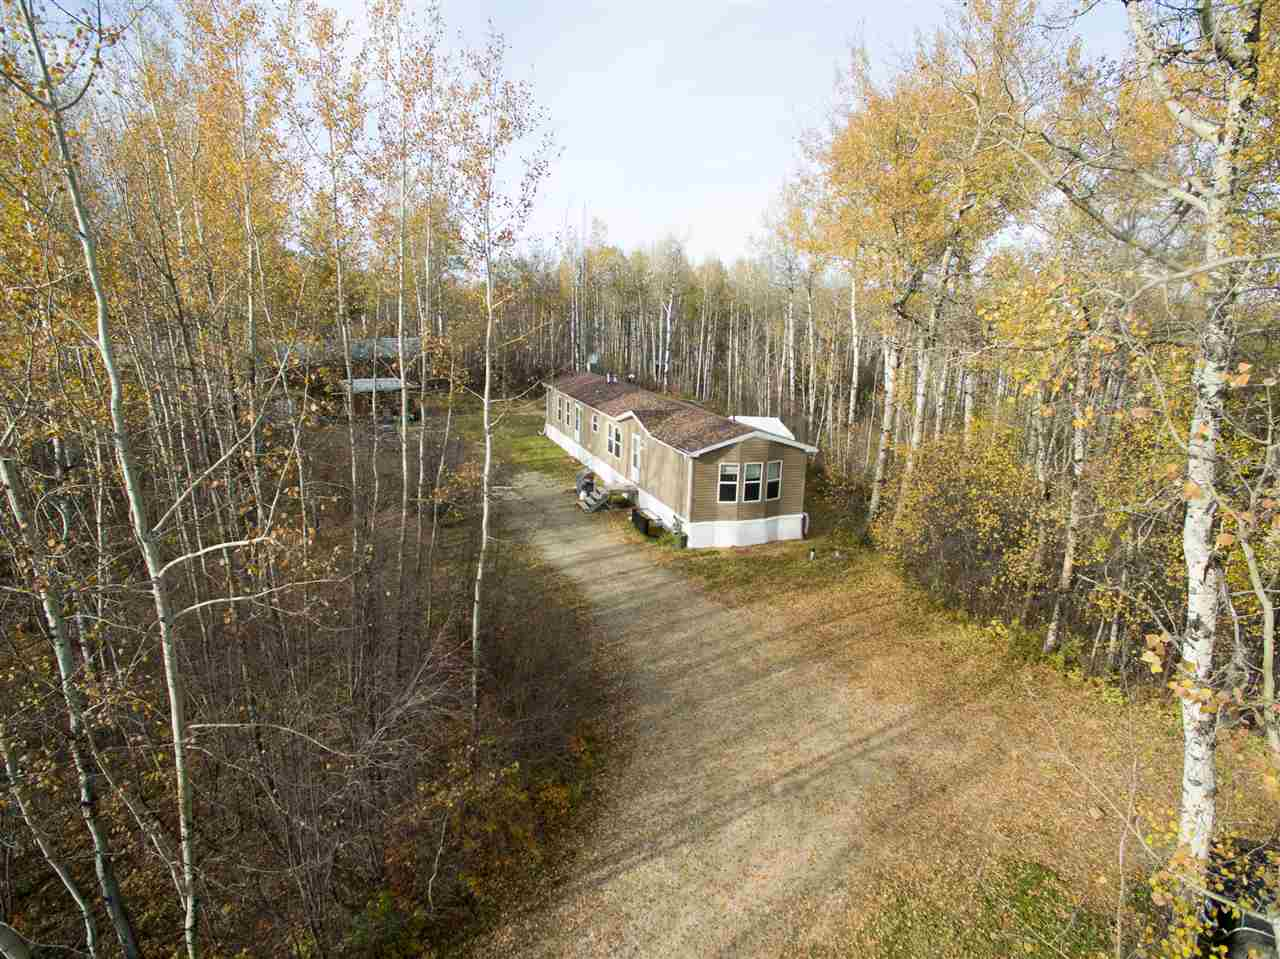 Photo 28: 200 54304 RRG 12: Rural Lac Ste. Anne County Manufactured Home for sale : MLS(r) # E4058523